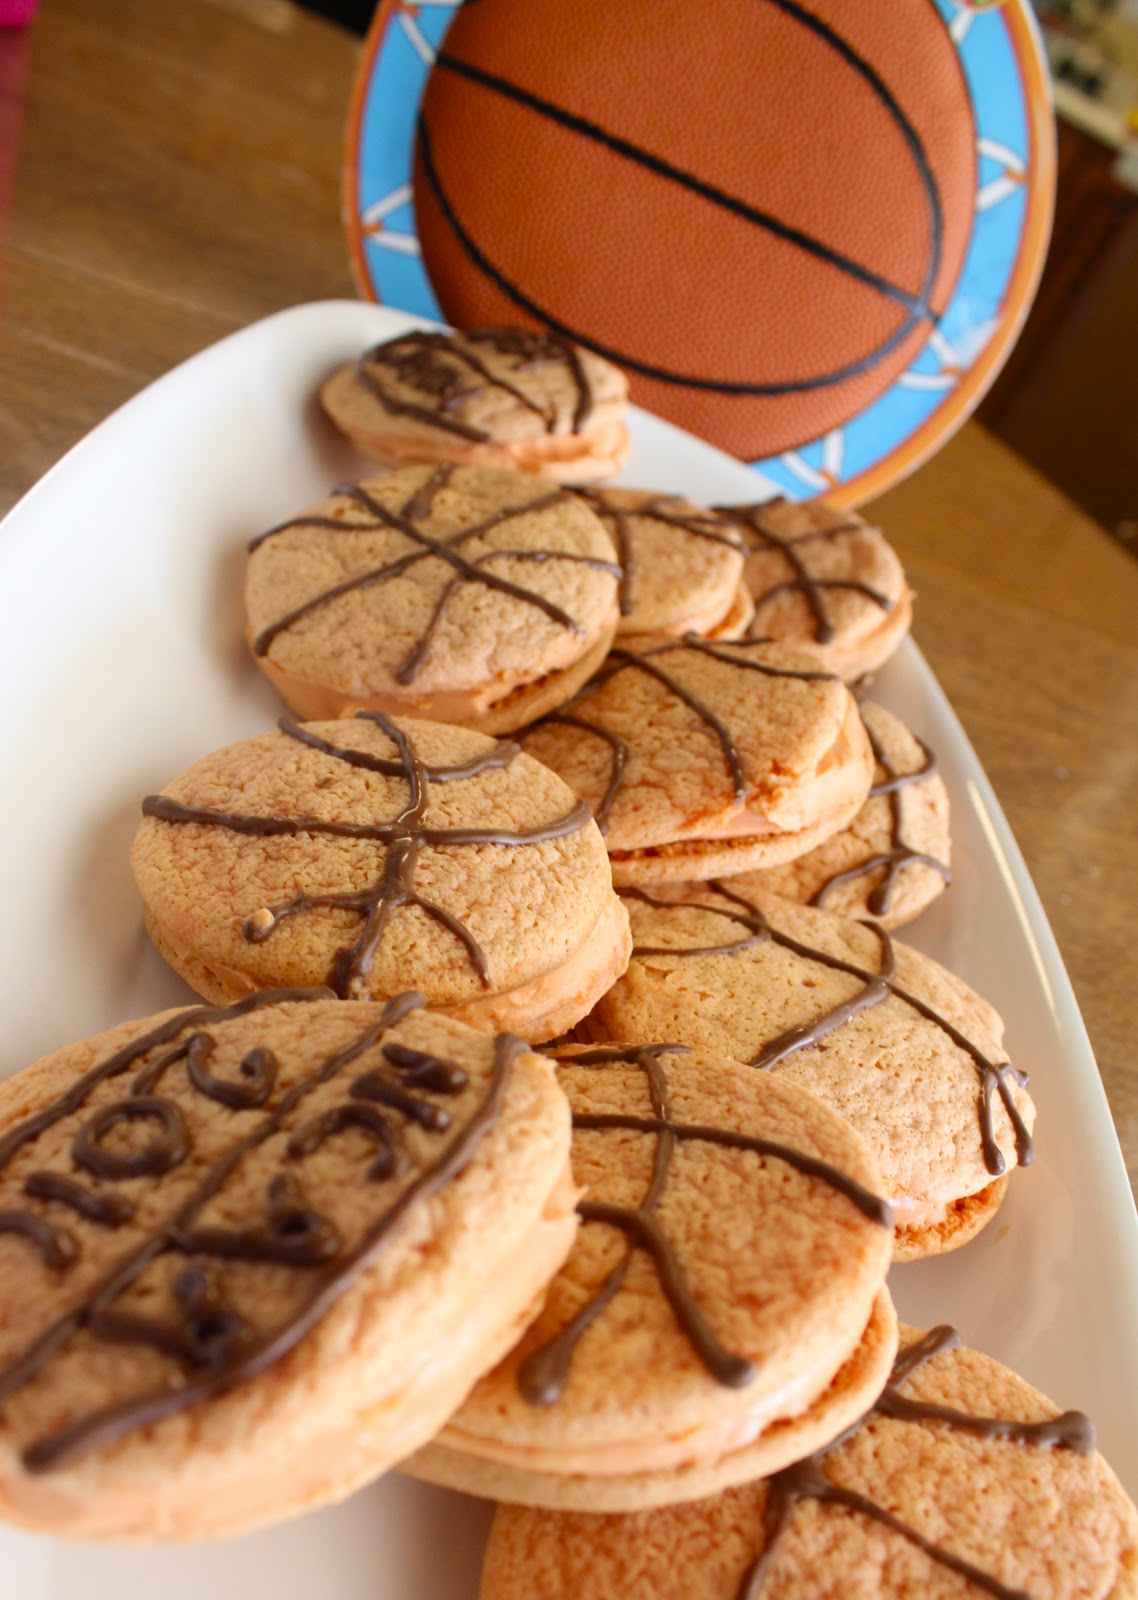 DIY Basketball whoopie pies